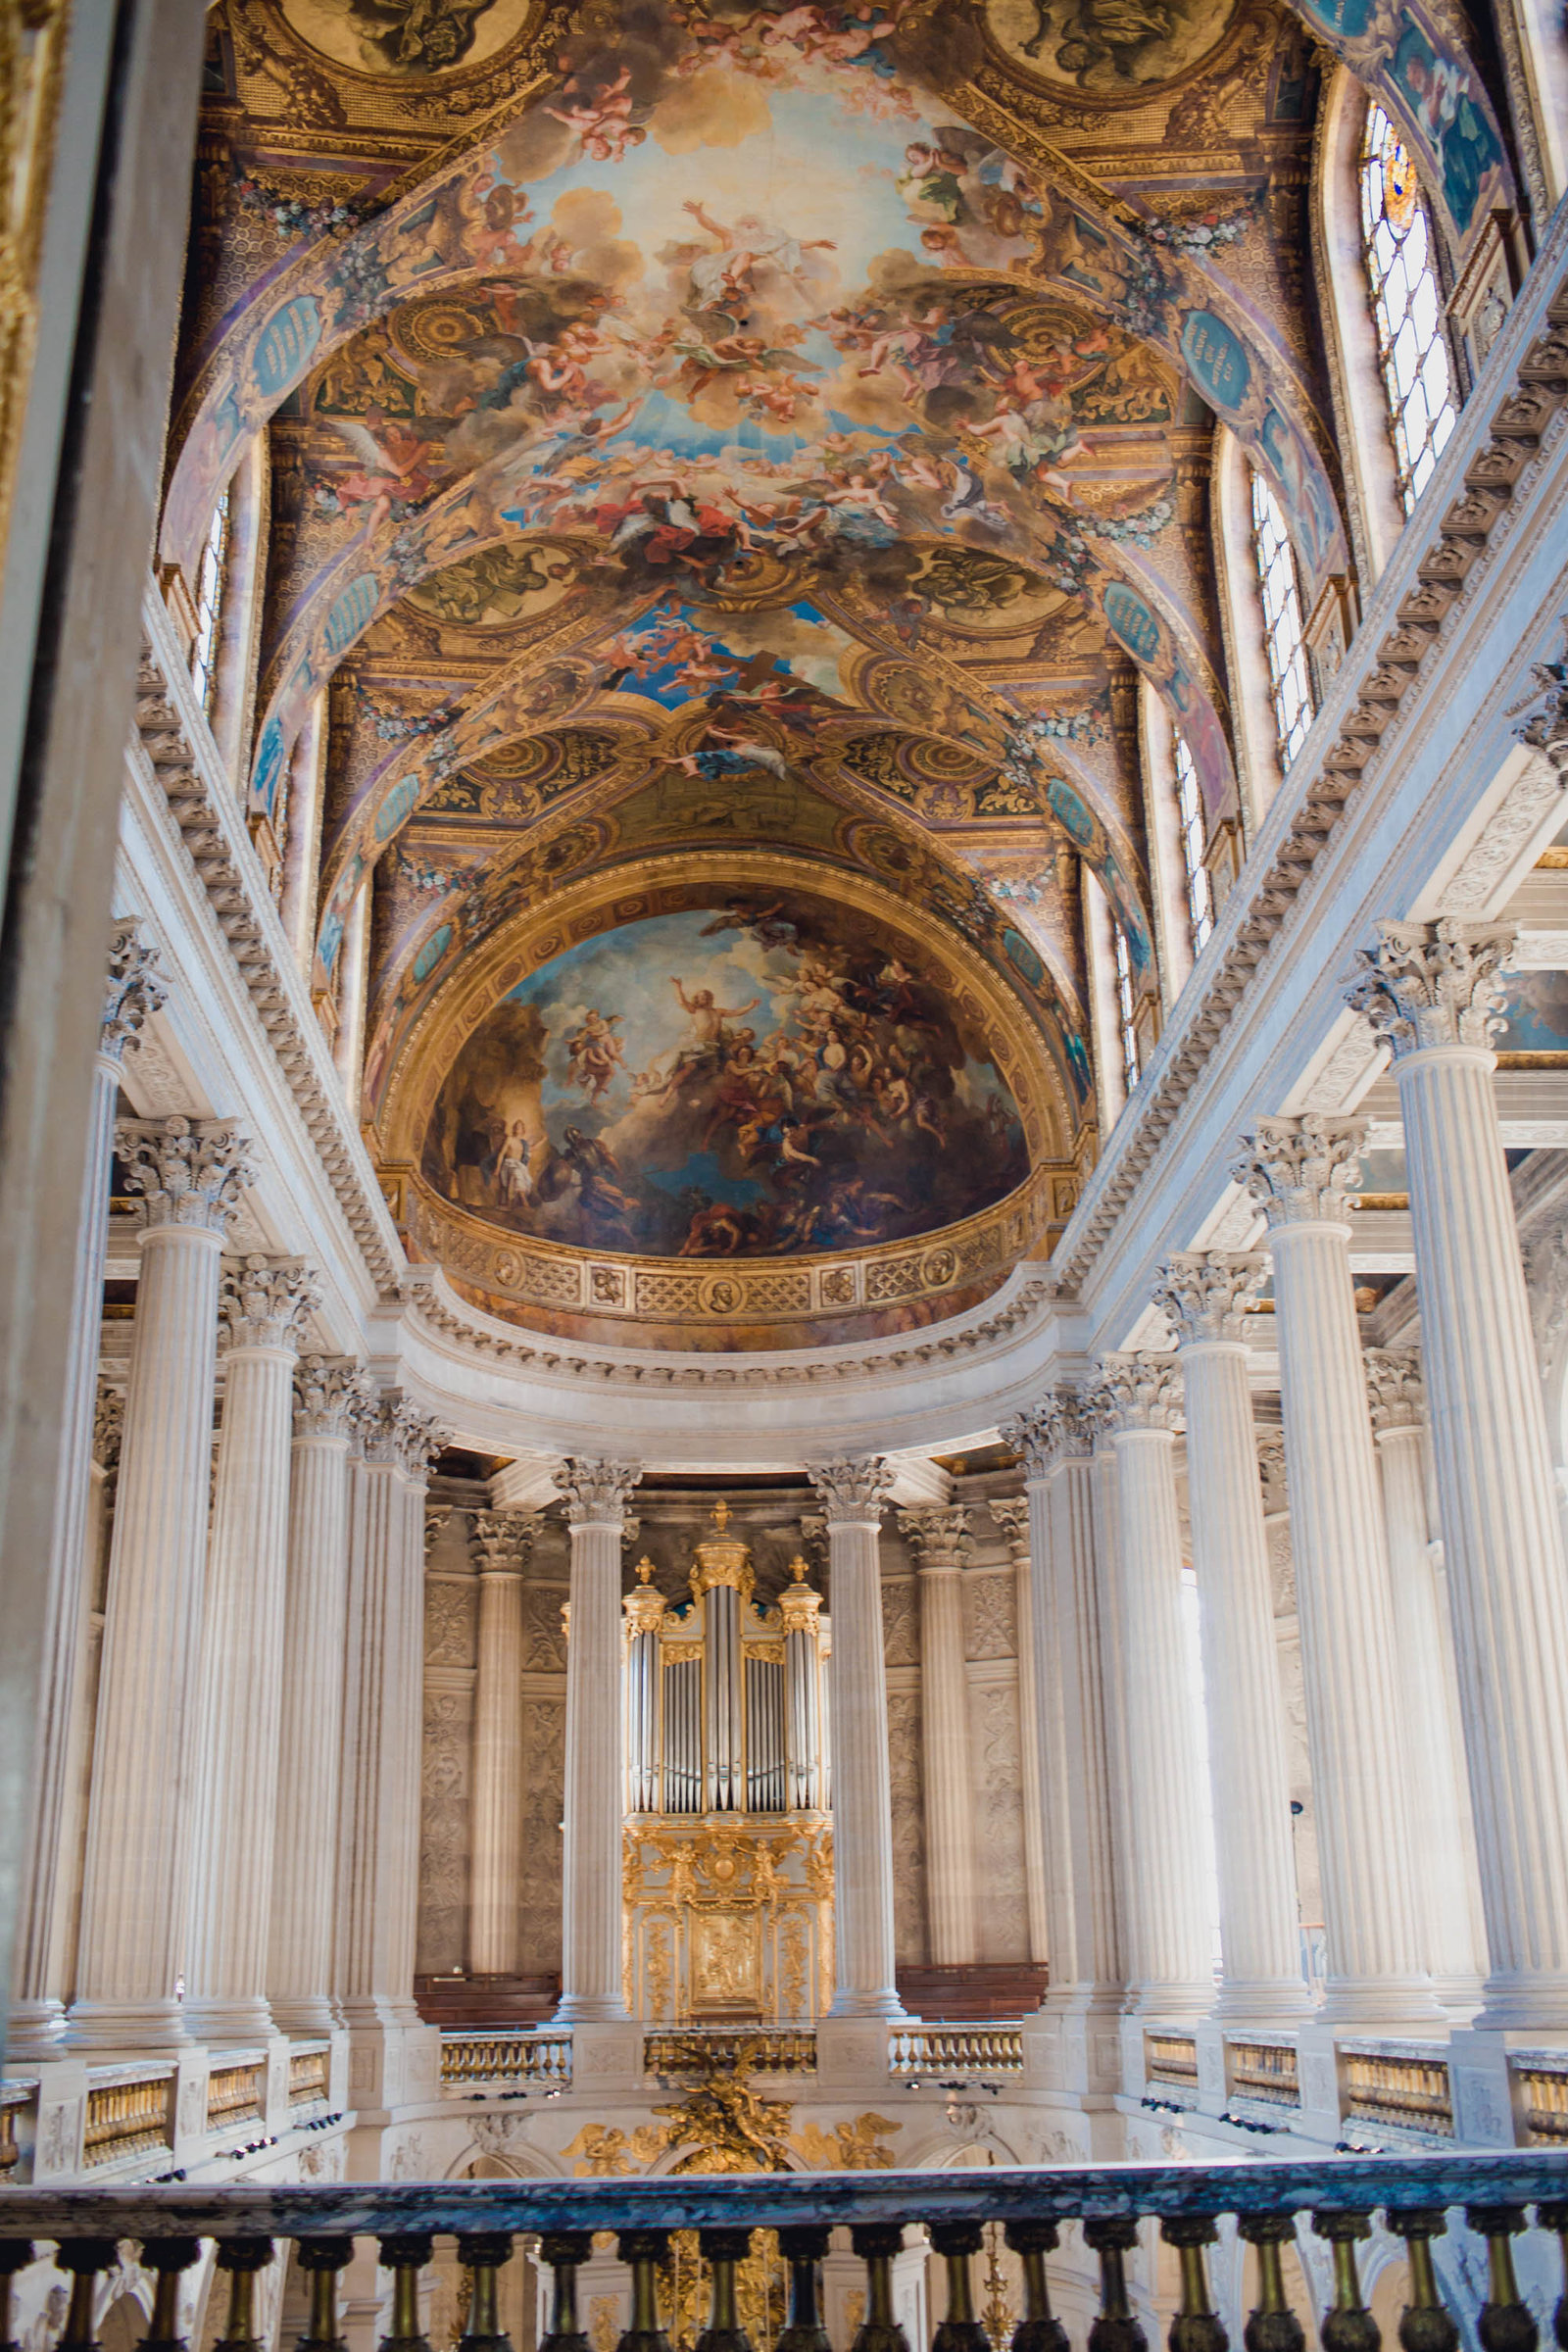 royal-chapel-palace-versailles-france-travel-destination-kate-timbers-photography-1651